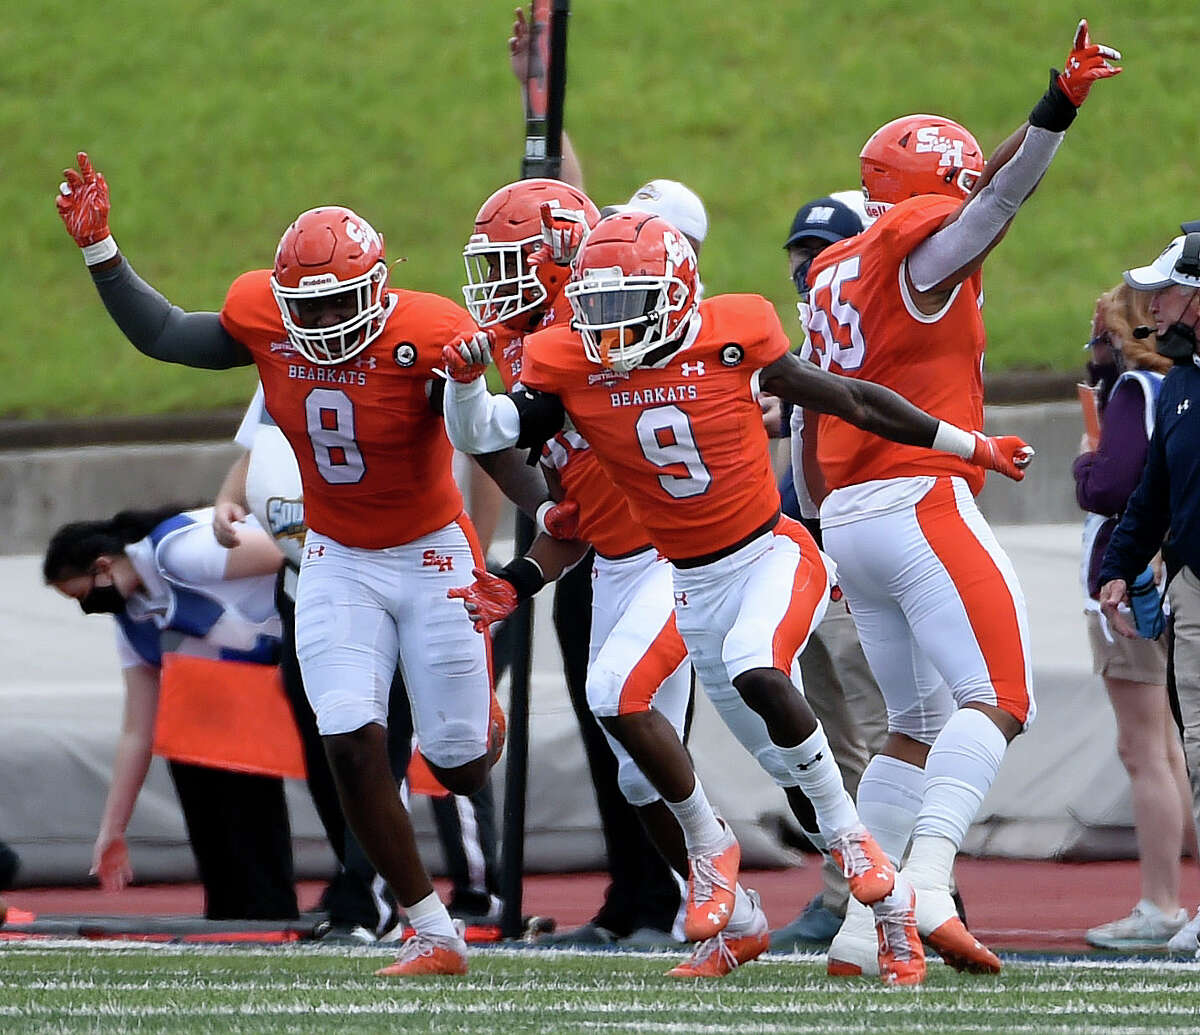 Sam Houston State defensive back Jaylen Thomas (9) celebrates his interception during the first half of a first round FCS college football playoff game against Monmouth, Saturday, April 24, 2021, in Huntsville, TX.